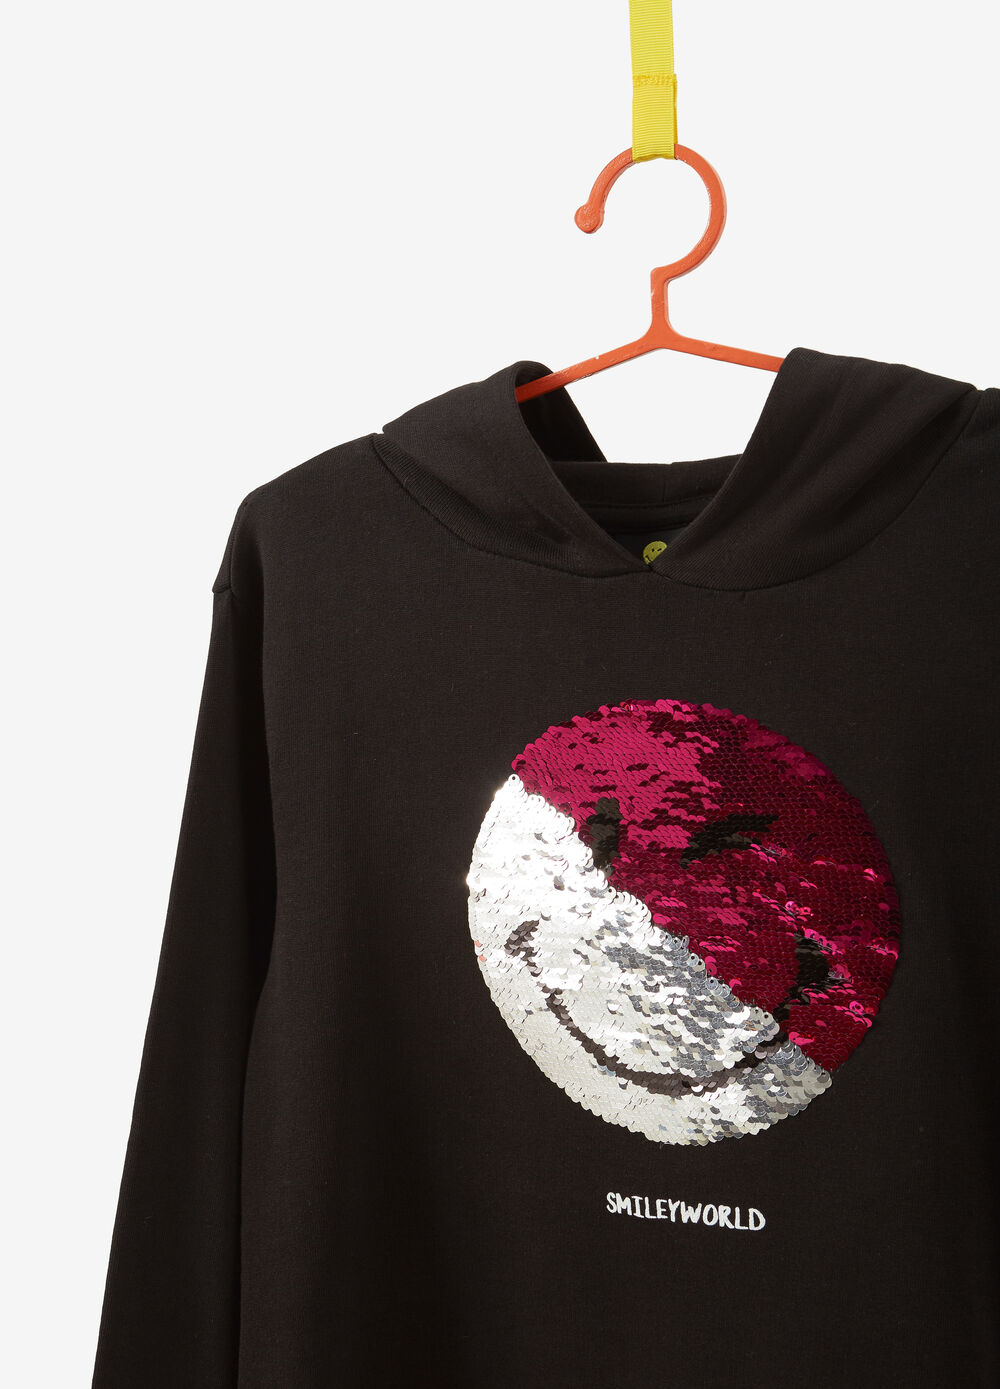 Sweatshirt in 100% cotton with smiley sequins